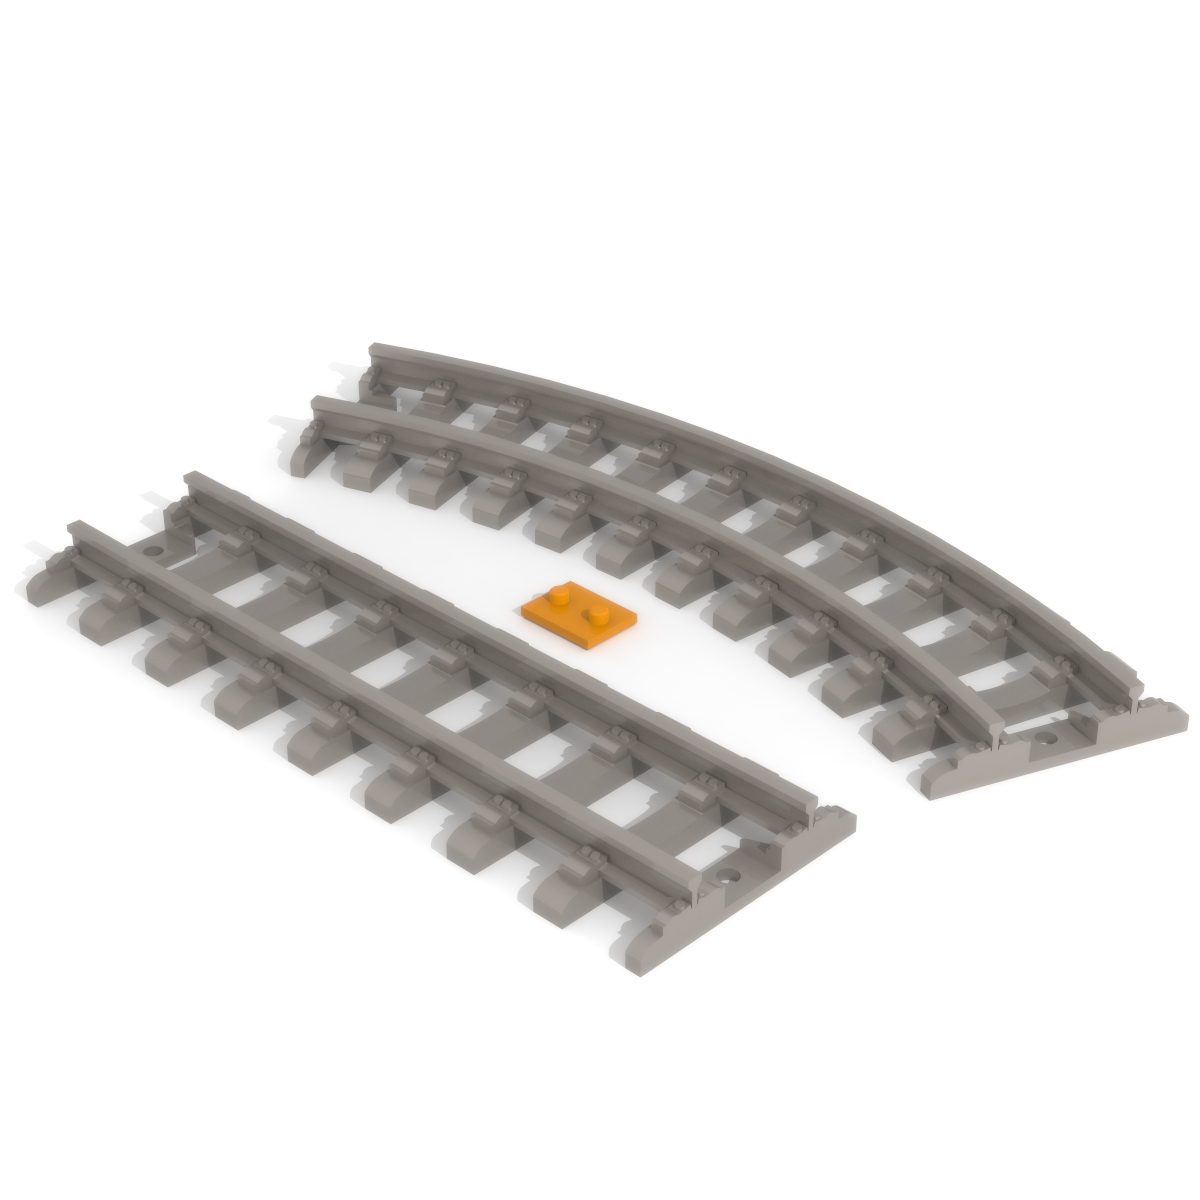 Rail Track Print Bed, 3D Printer Models